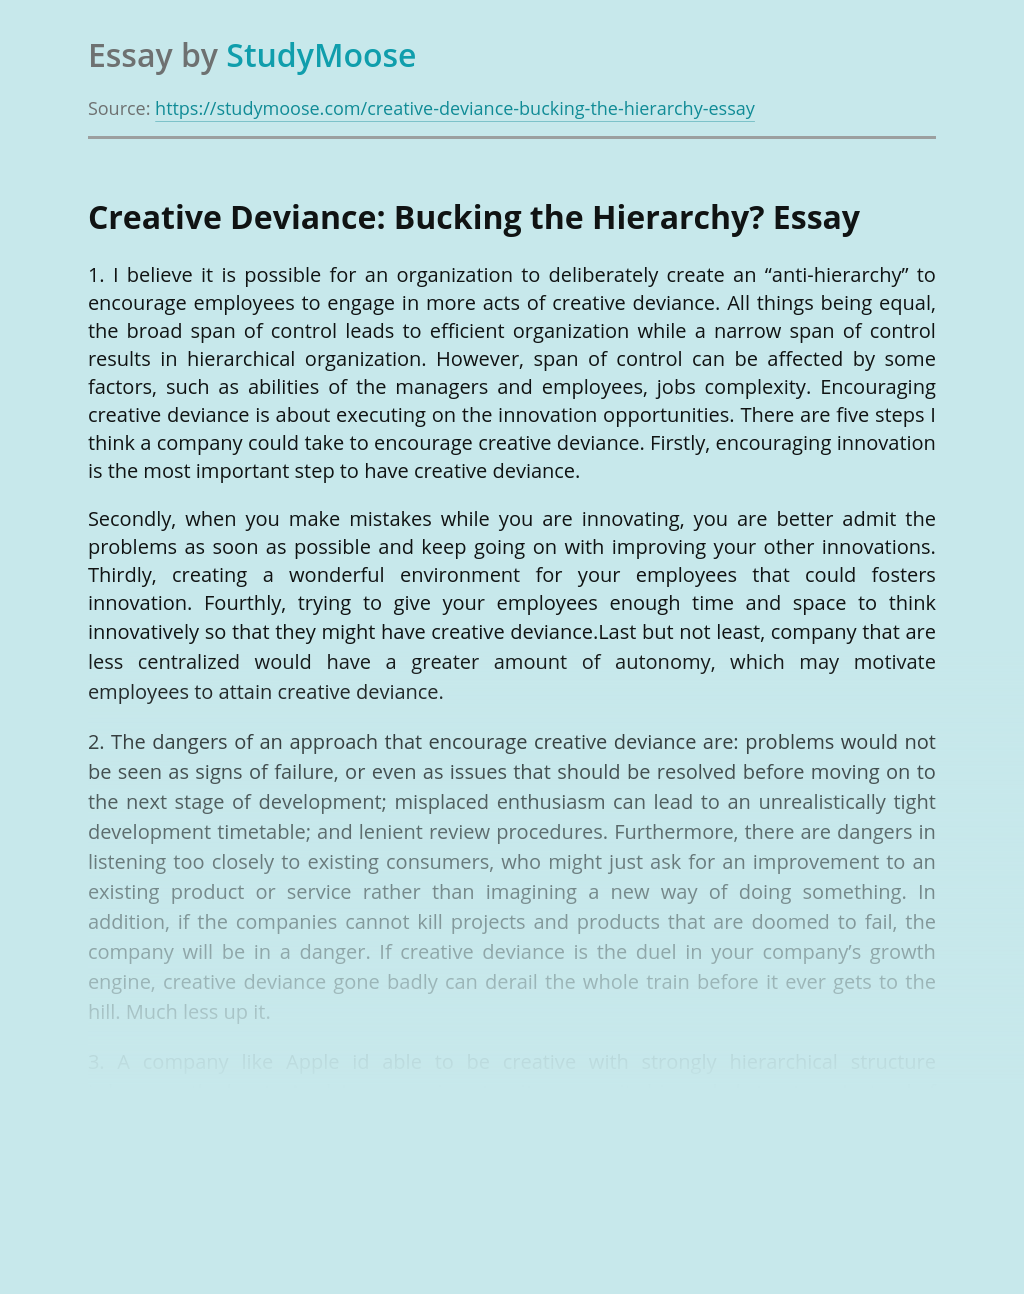 Creative Deviance: Bucking the Hierarchy?